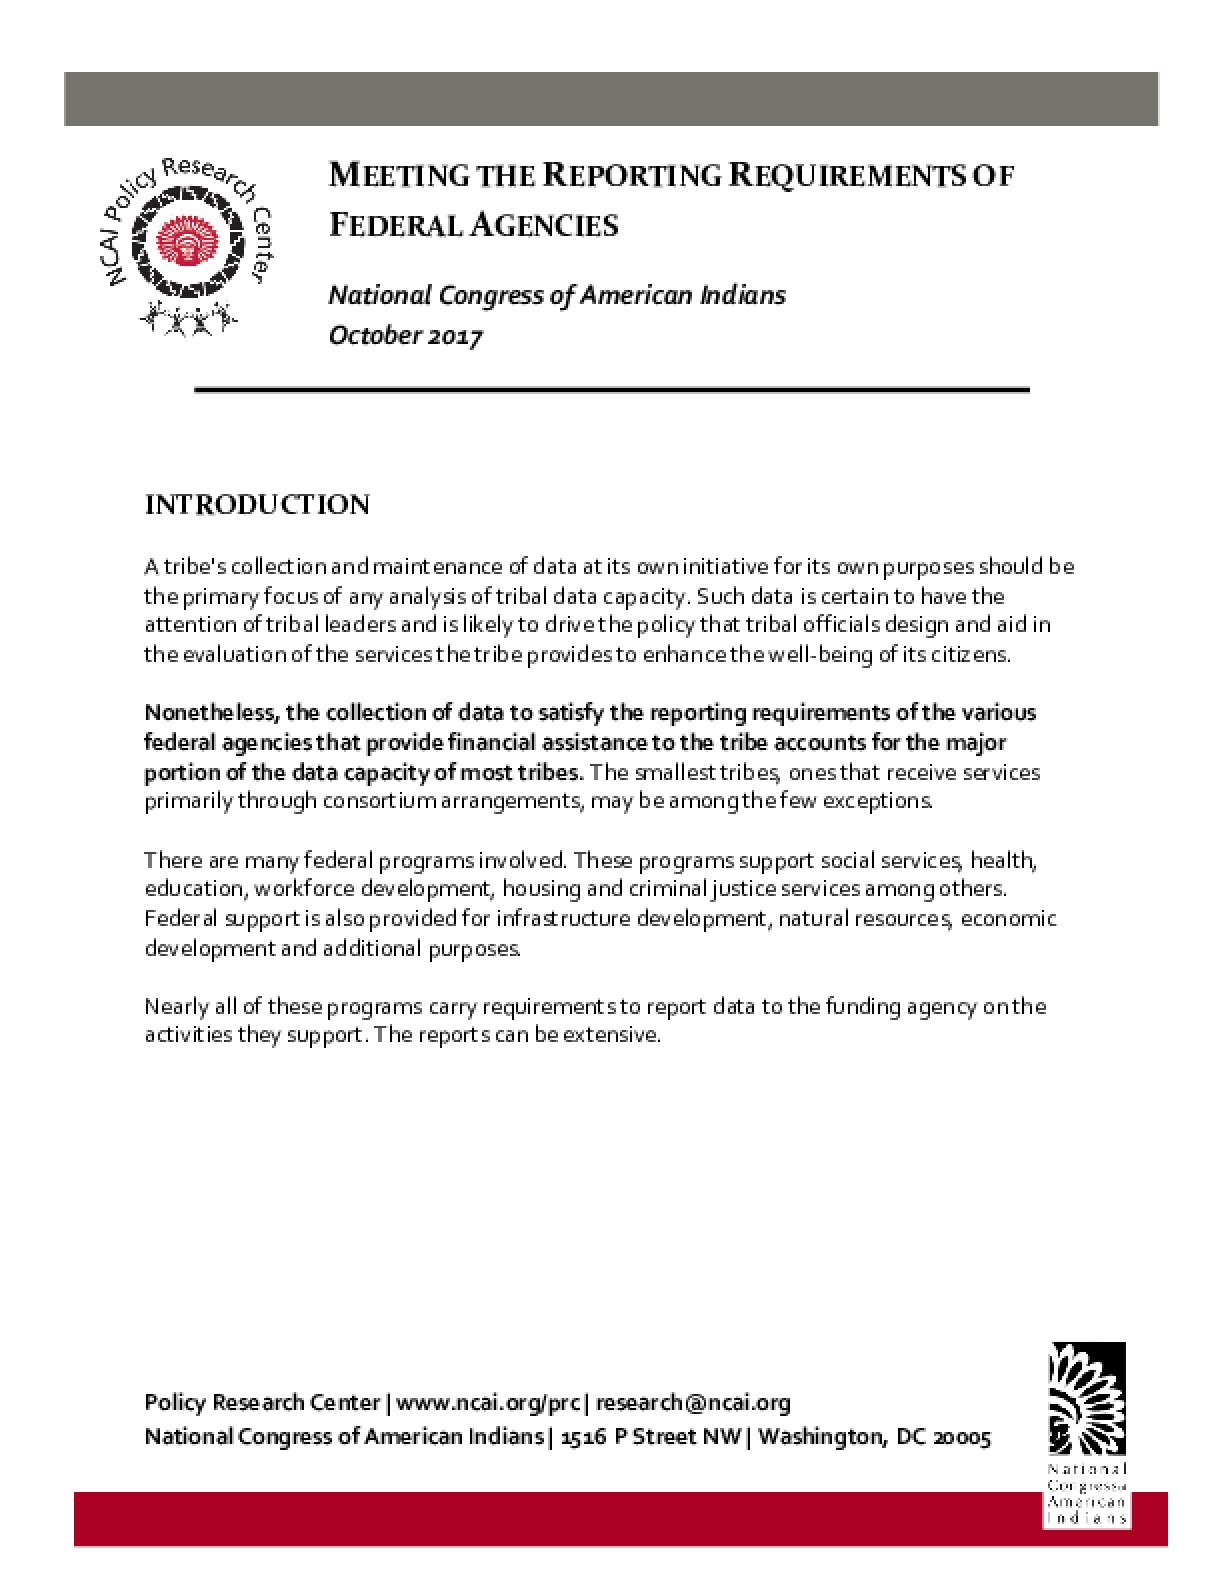 Meeting the Reporting Requirements of Federal Agencies